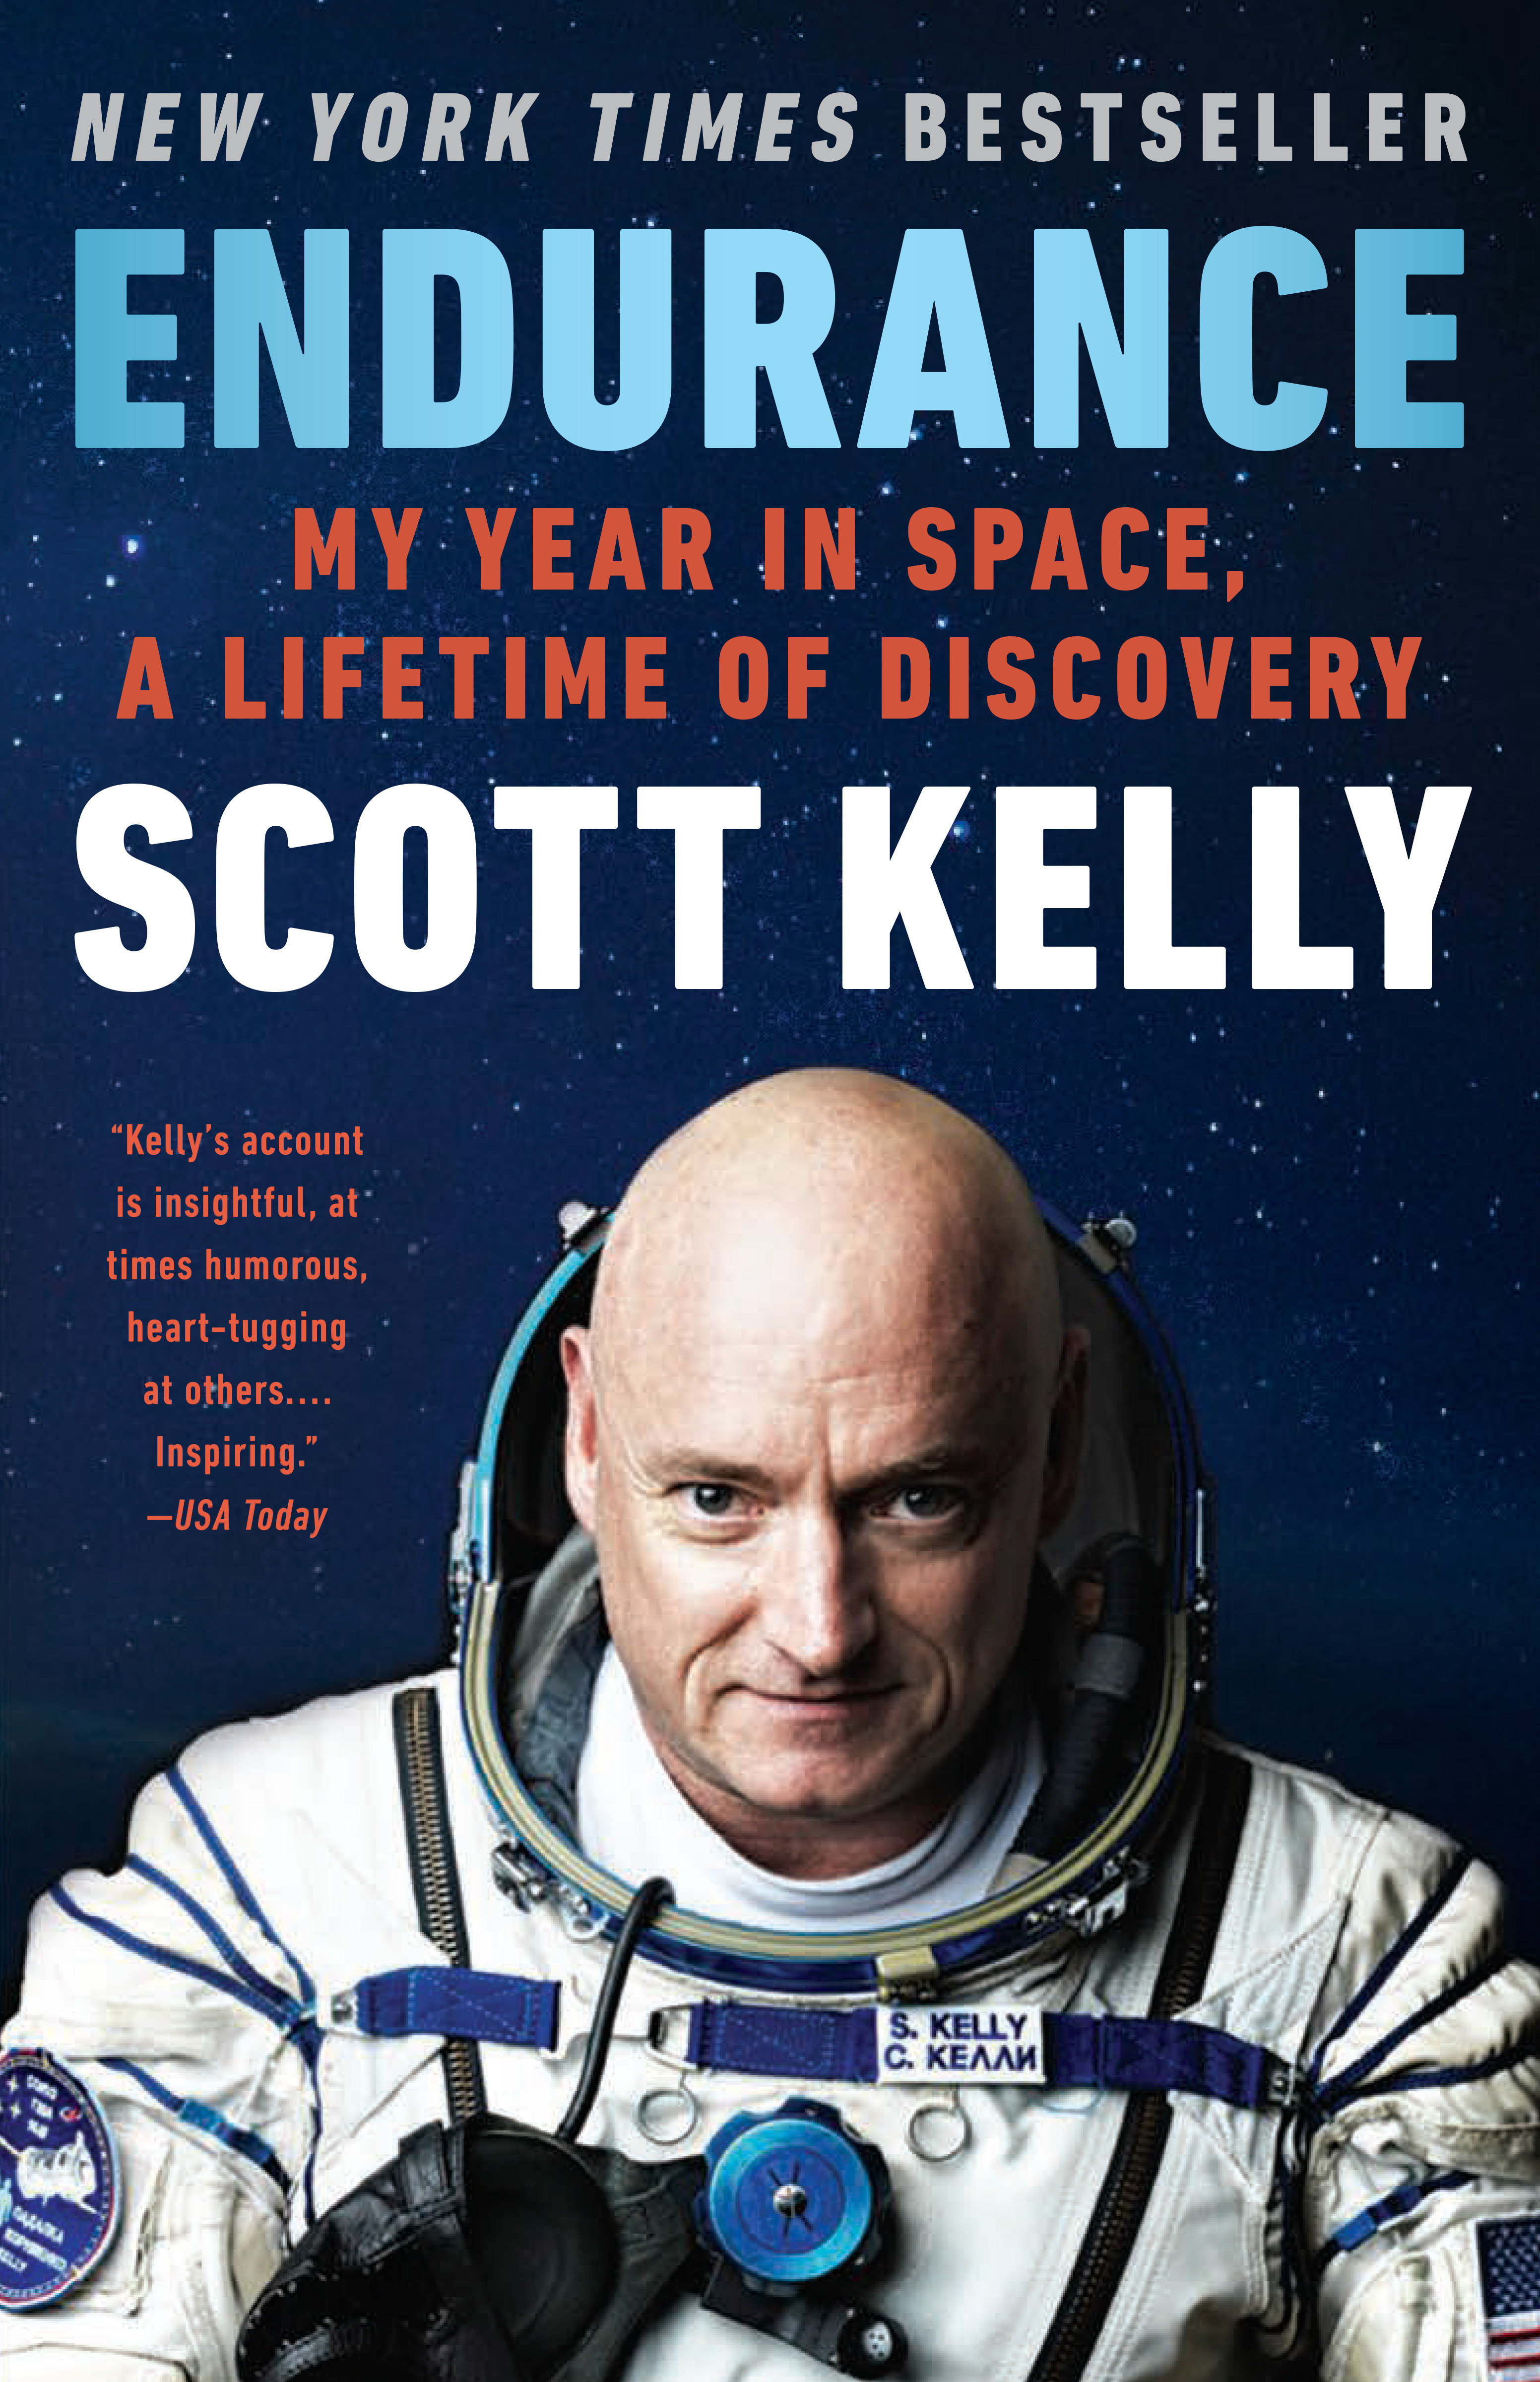 Endurance My Year in Space, A Lifetime of Discovery